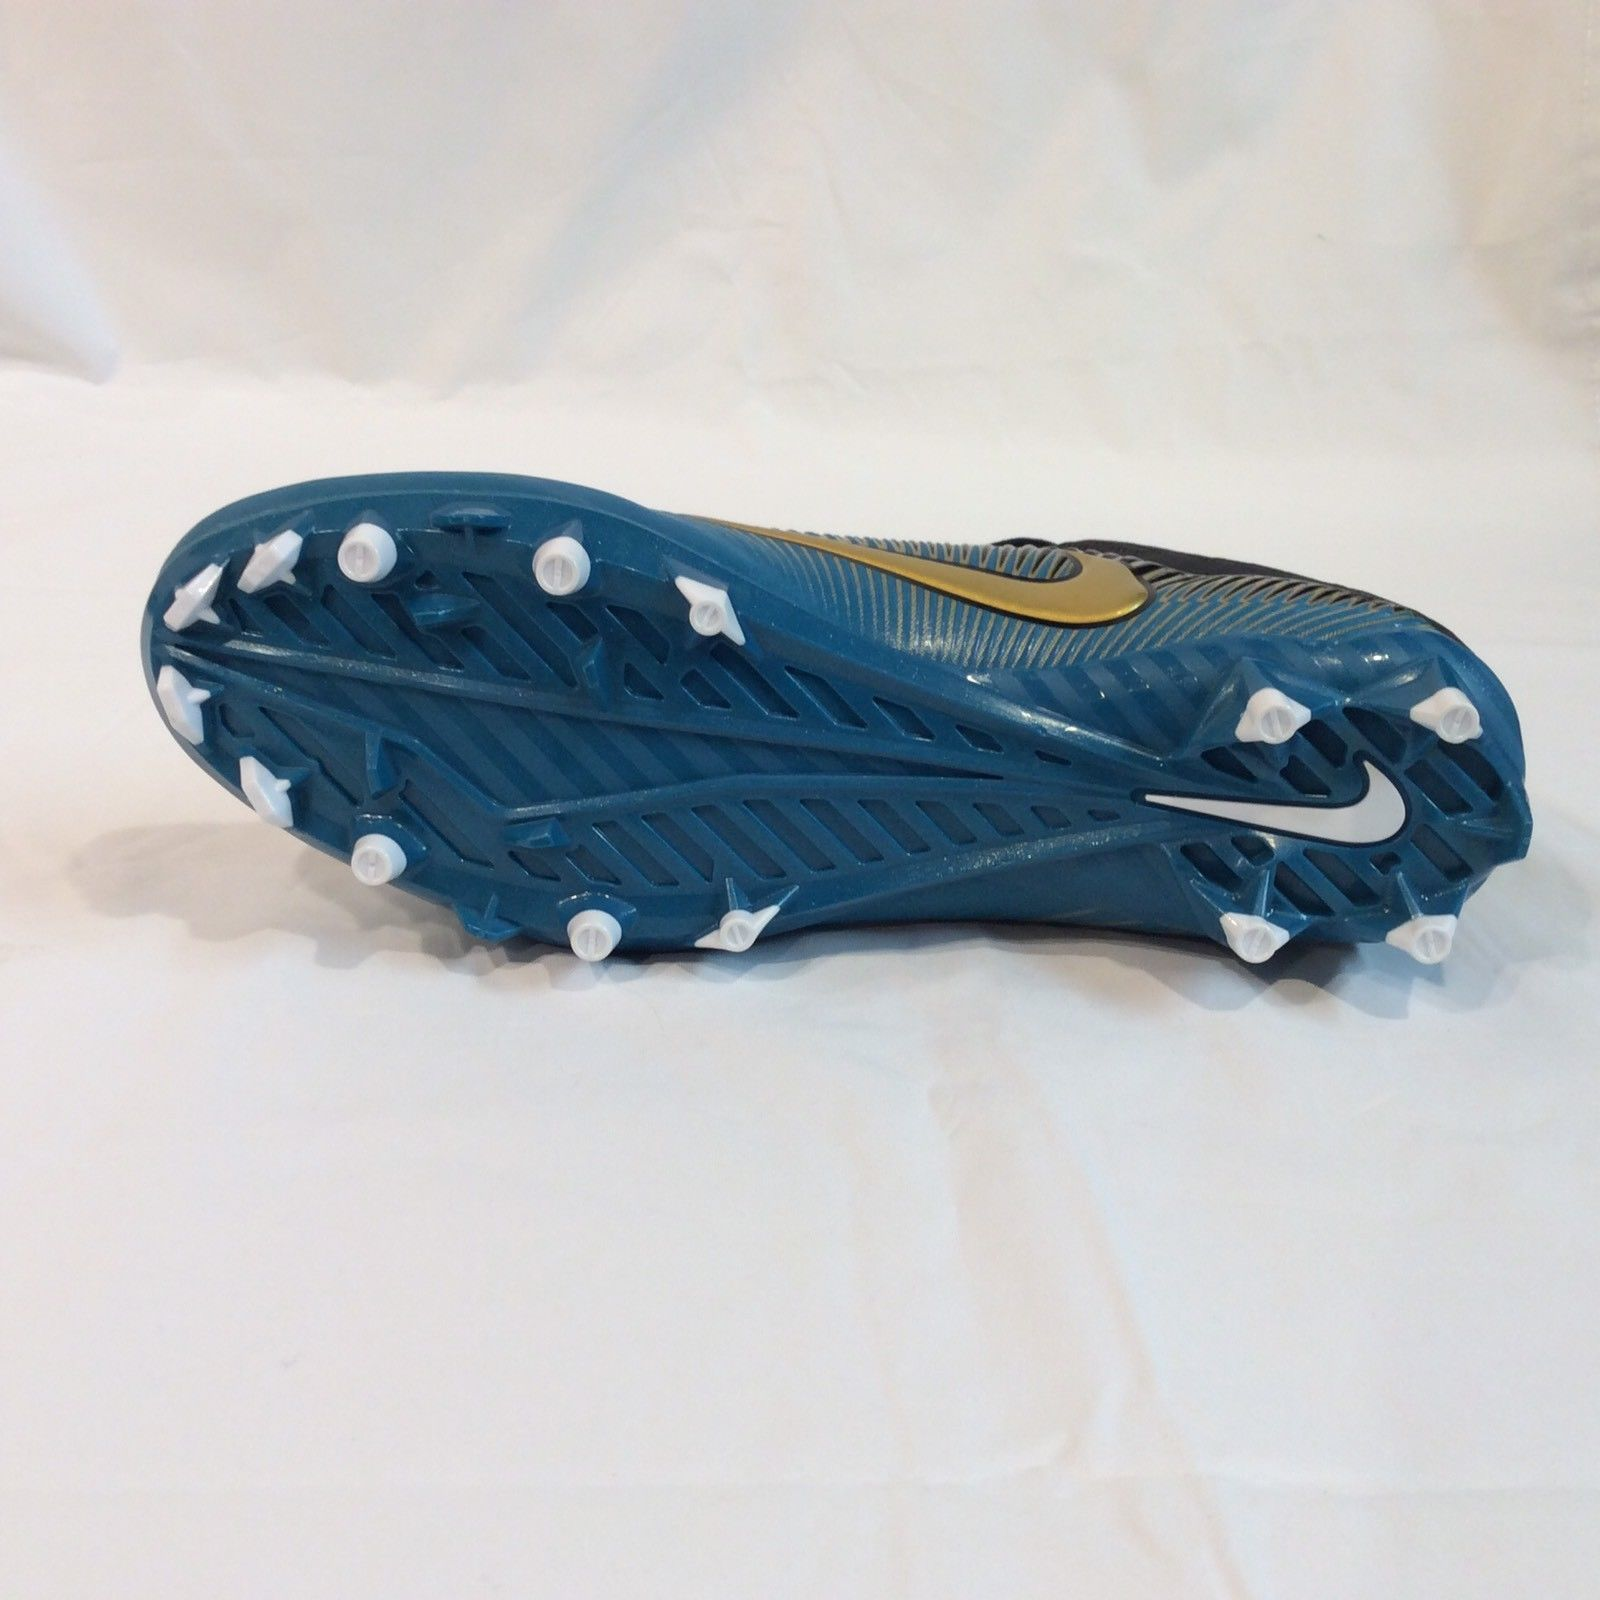 0596cbb2ef6 ... Nike 846805-415 Vapor Speed 2 Low TD (11.5) Gold Teal Football Cleats  ...